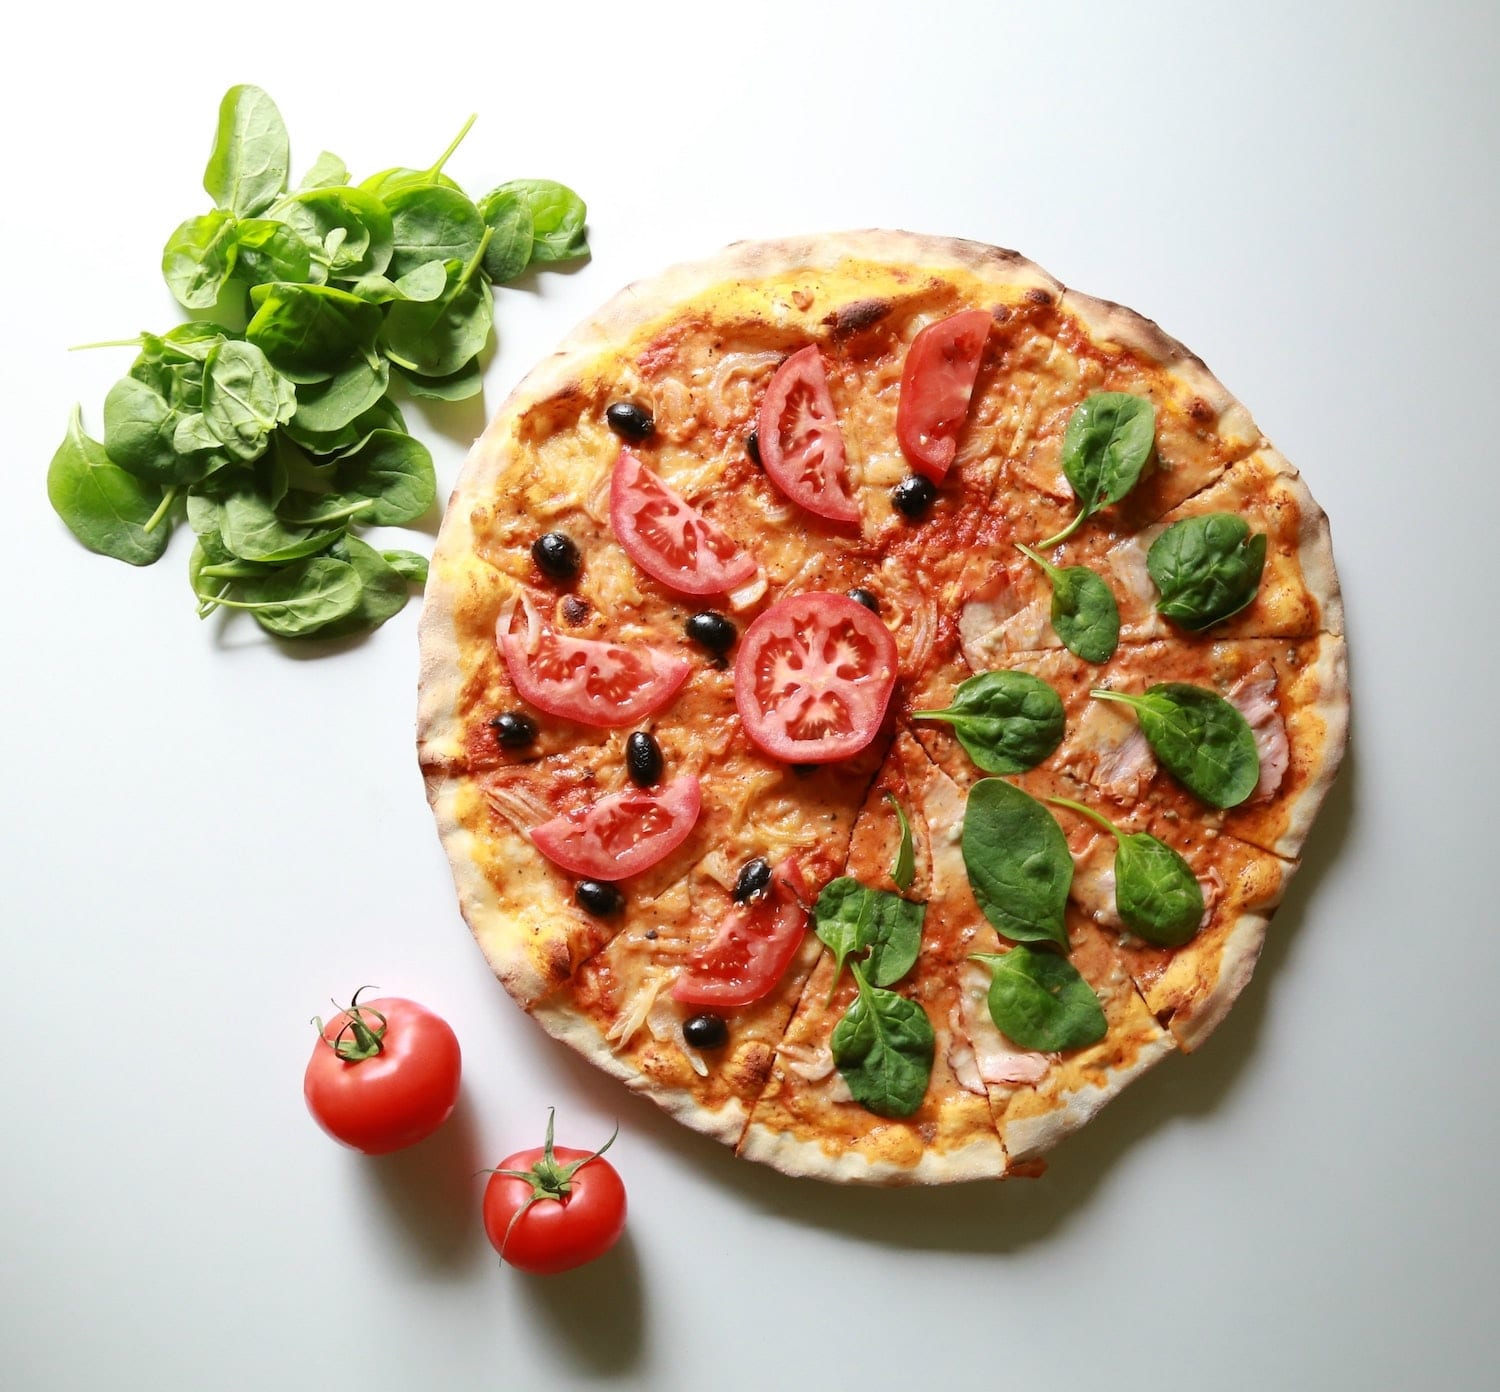 Cheese pizza topped with fresh tomato slices and spinach leaves